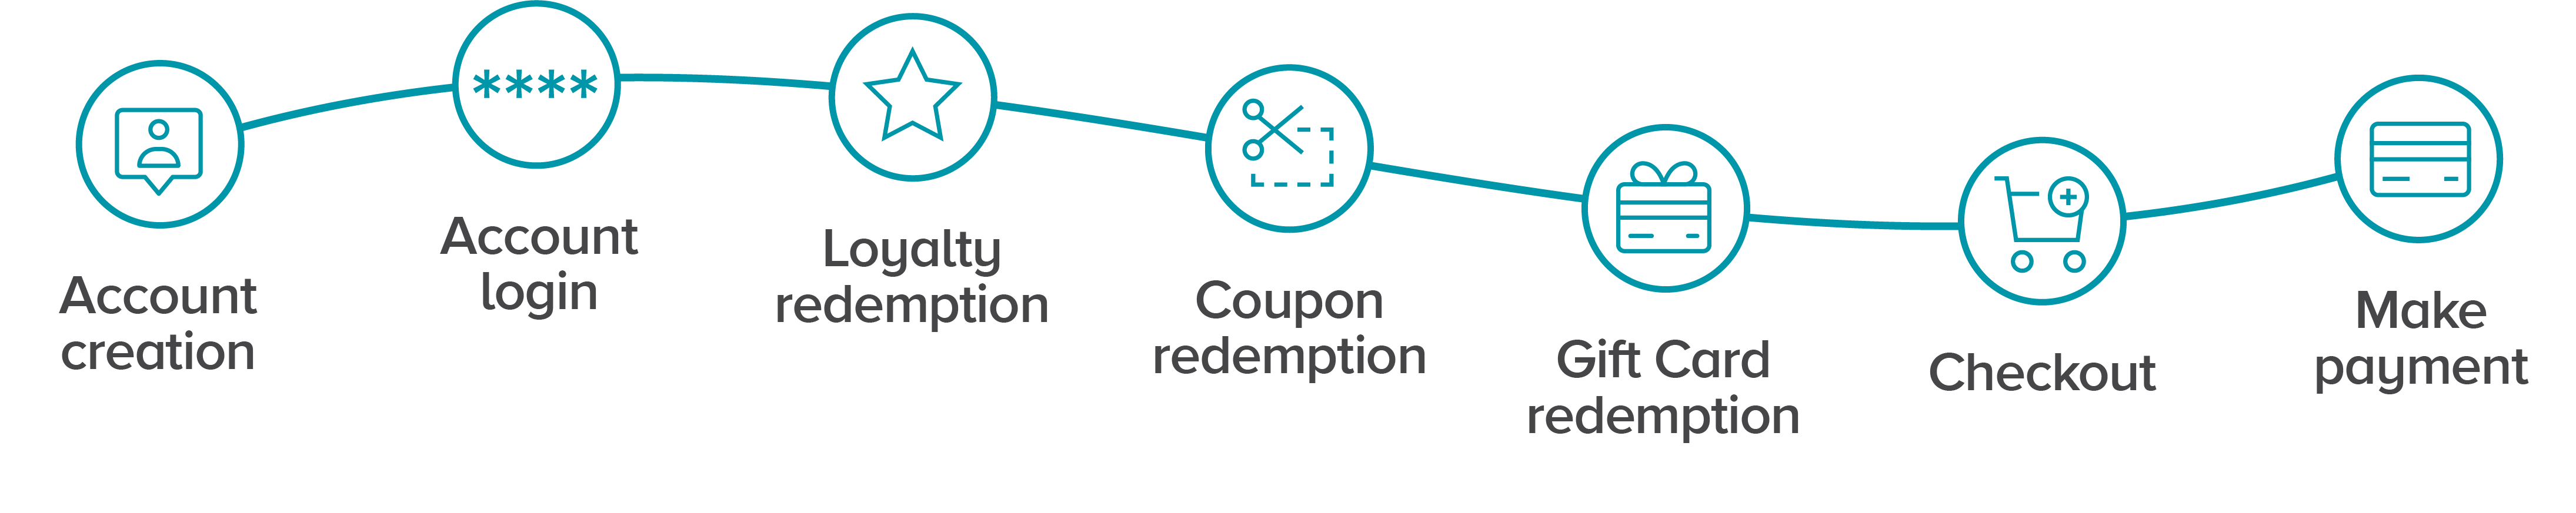 An illustration of the customer journey on a timeline: Account creation, account login, loyalty redemption, coupon redemption, gift card redemption, make payment